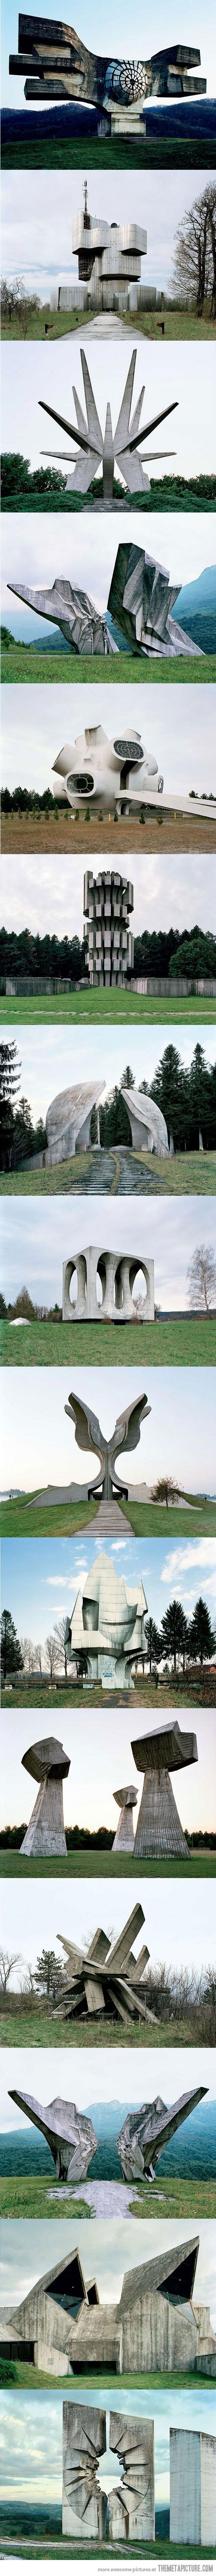 The third one down looks like an homage to the Witch-king of Angmar... Abandoned monuments that look like they're from the future